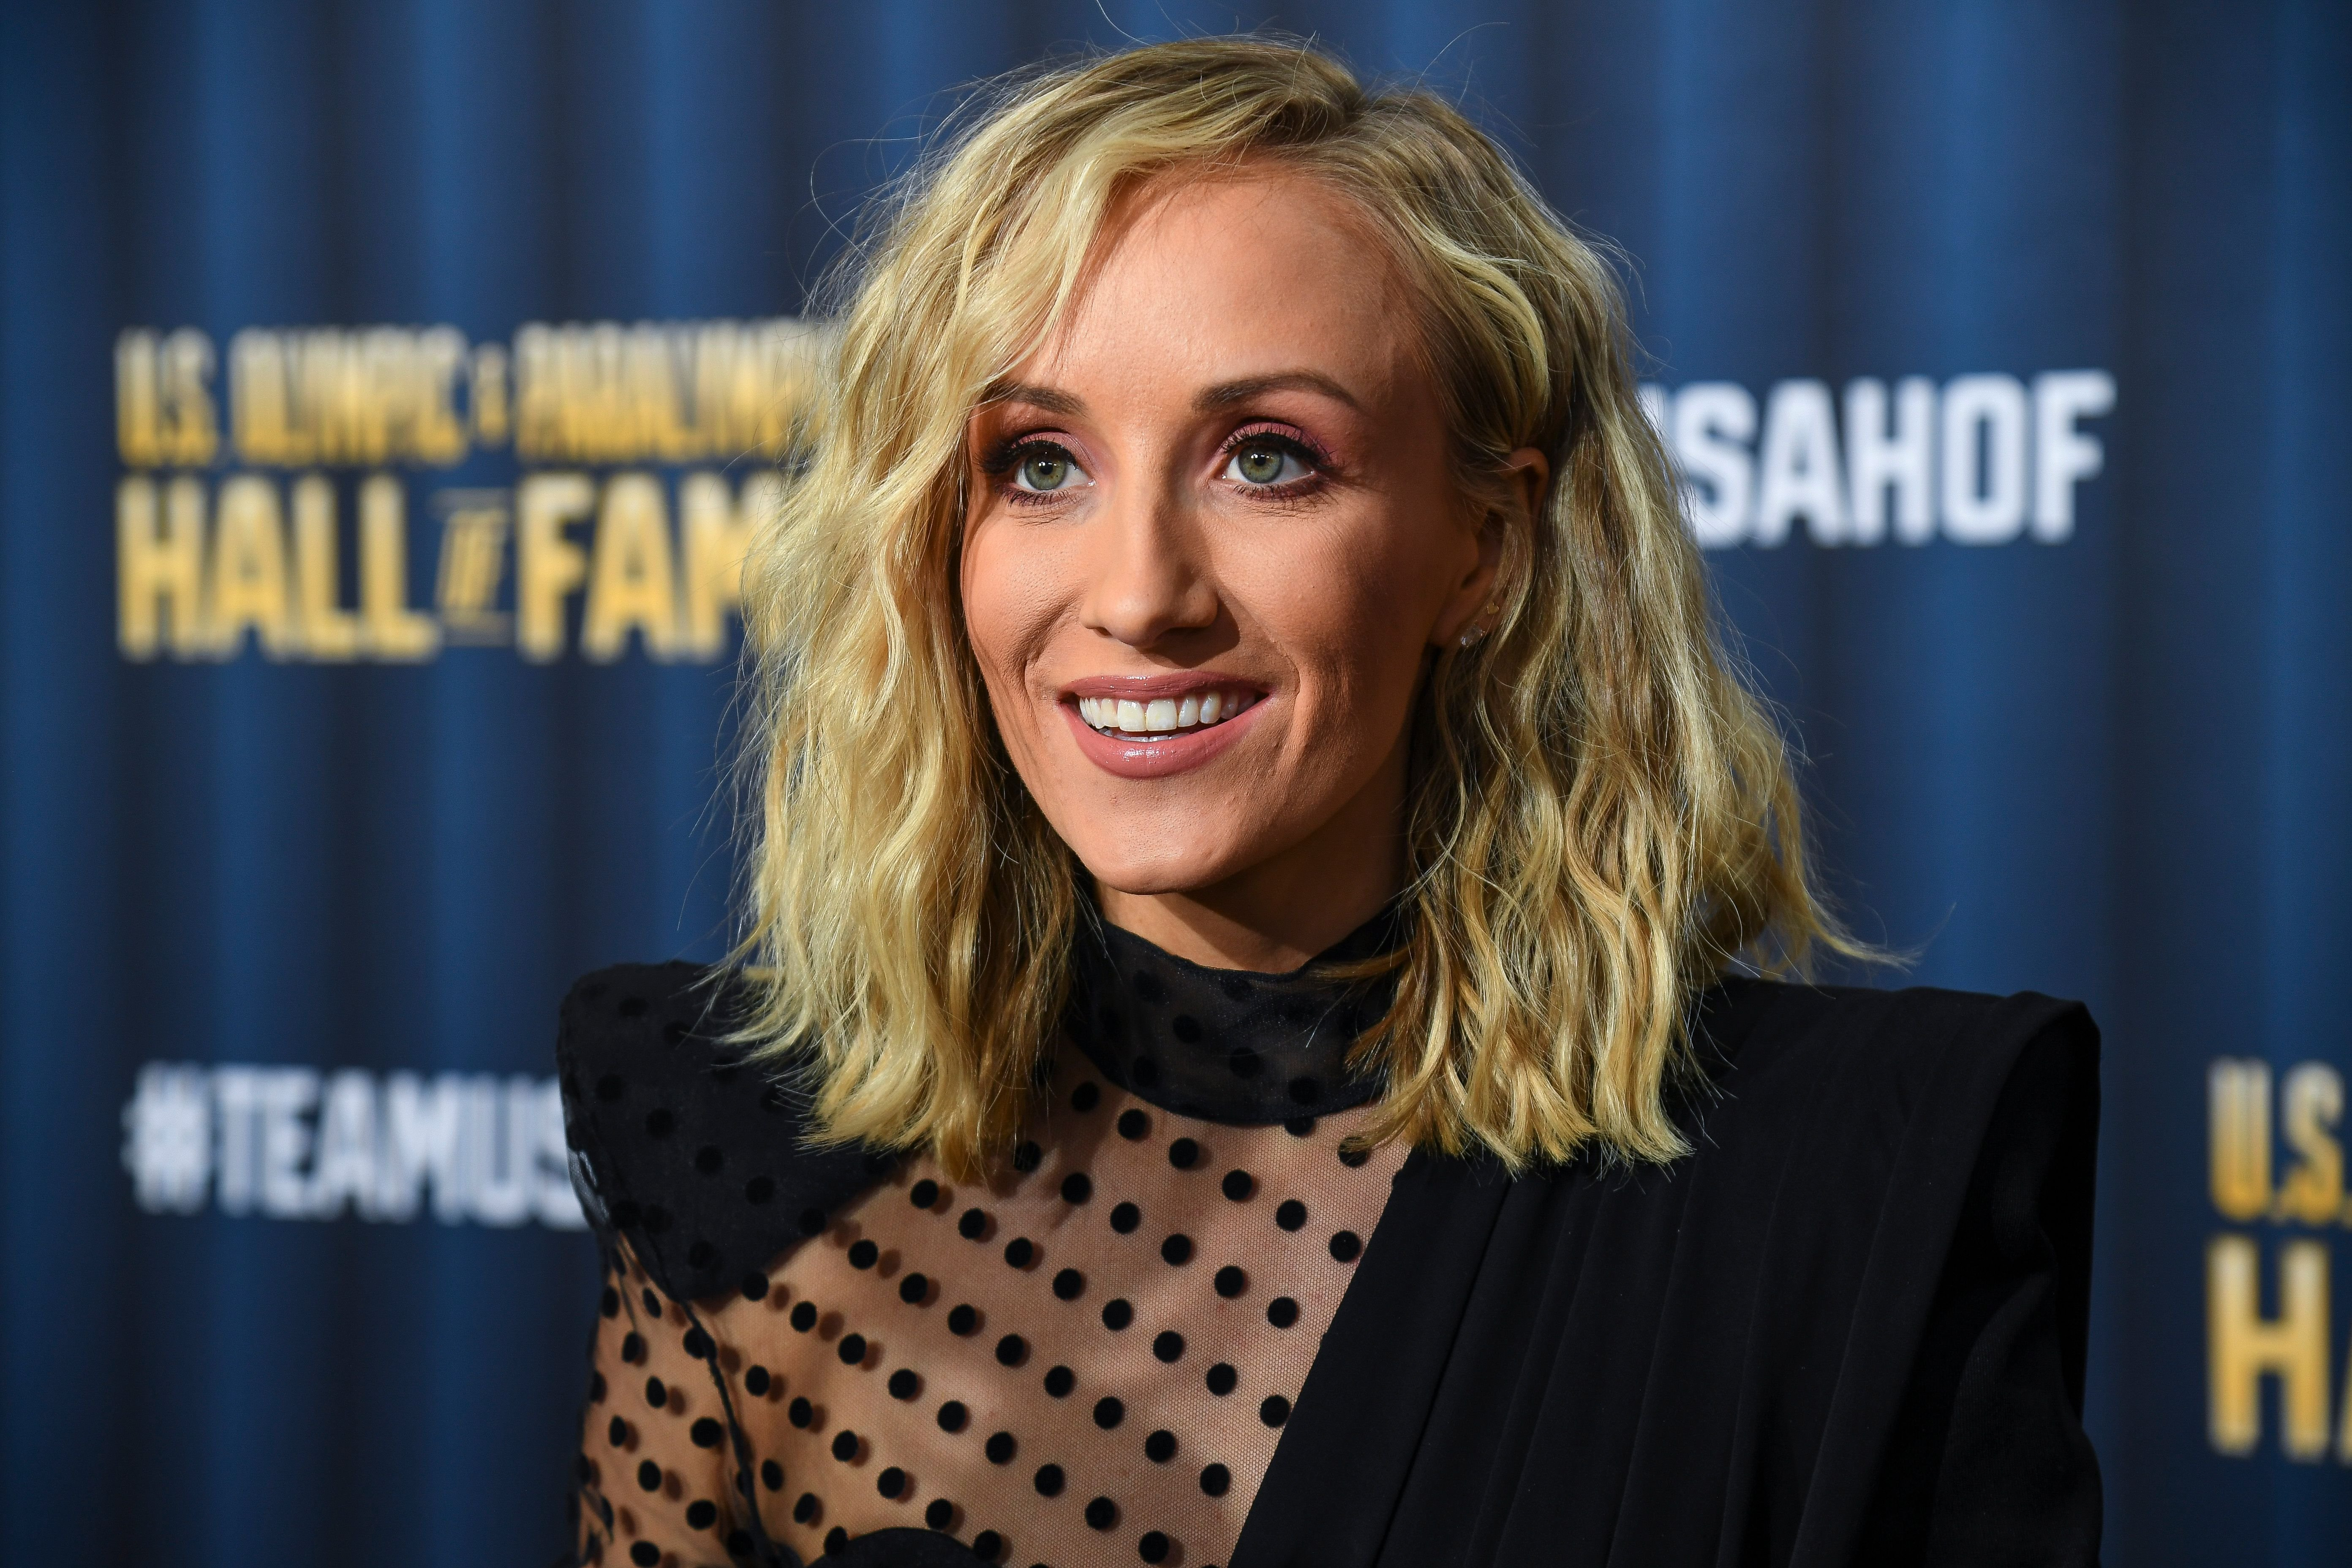 Gymnast Nastia Liukin at the U.S. Olympic Hall of Fame Class of 2019 Induction Ceremony on November 1, 2019 | Photo: Getty Images